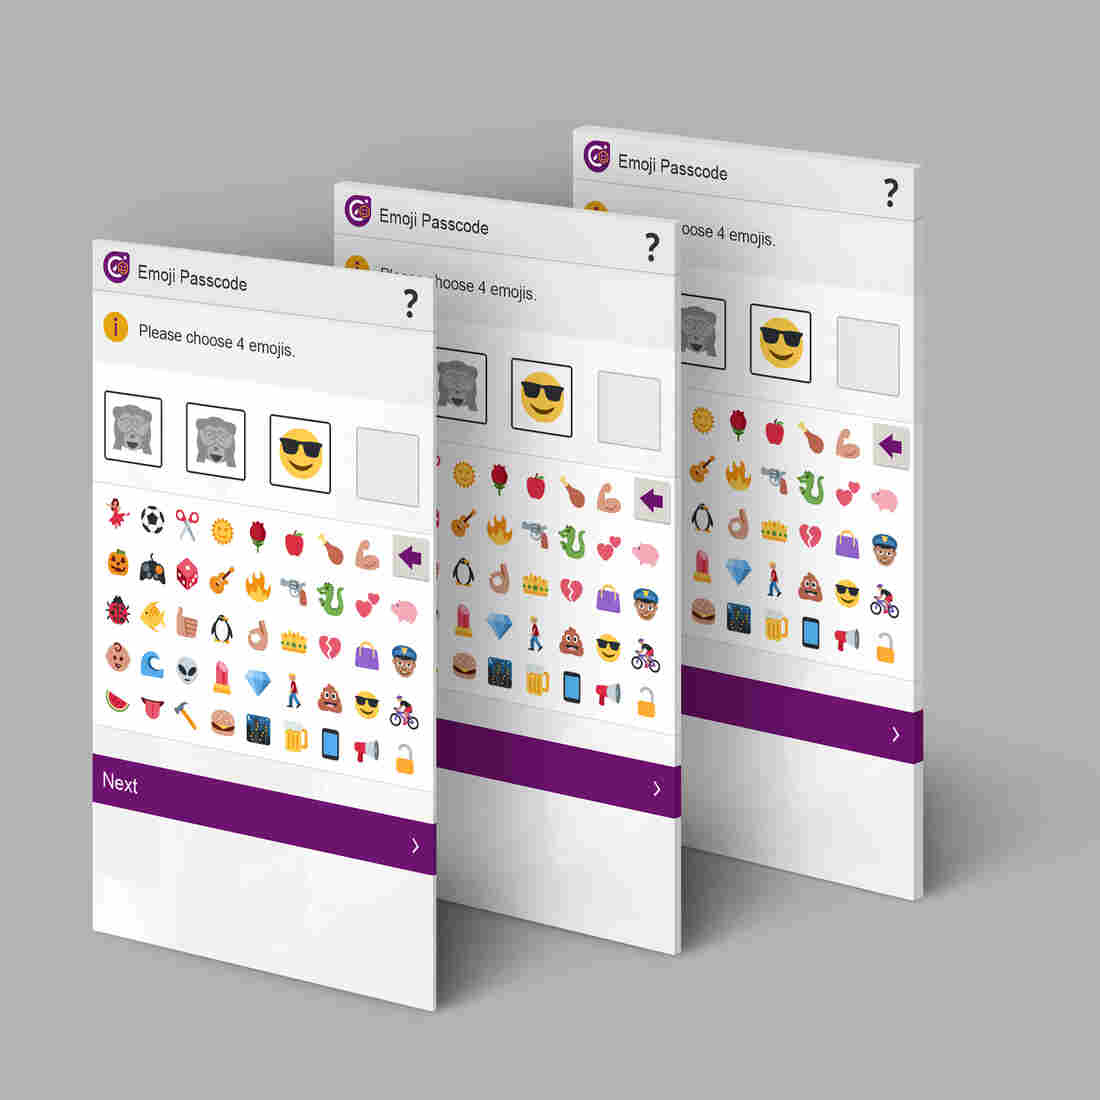 A UK banking services provider says emoji passwords will be easier to remember and safer than numeric or letter-based codes.